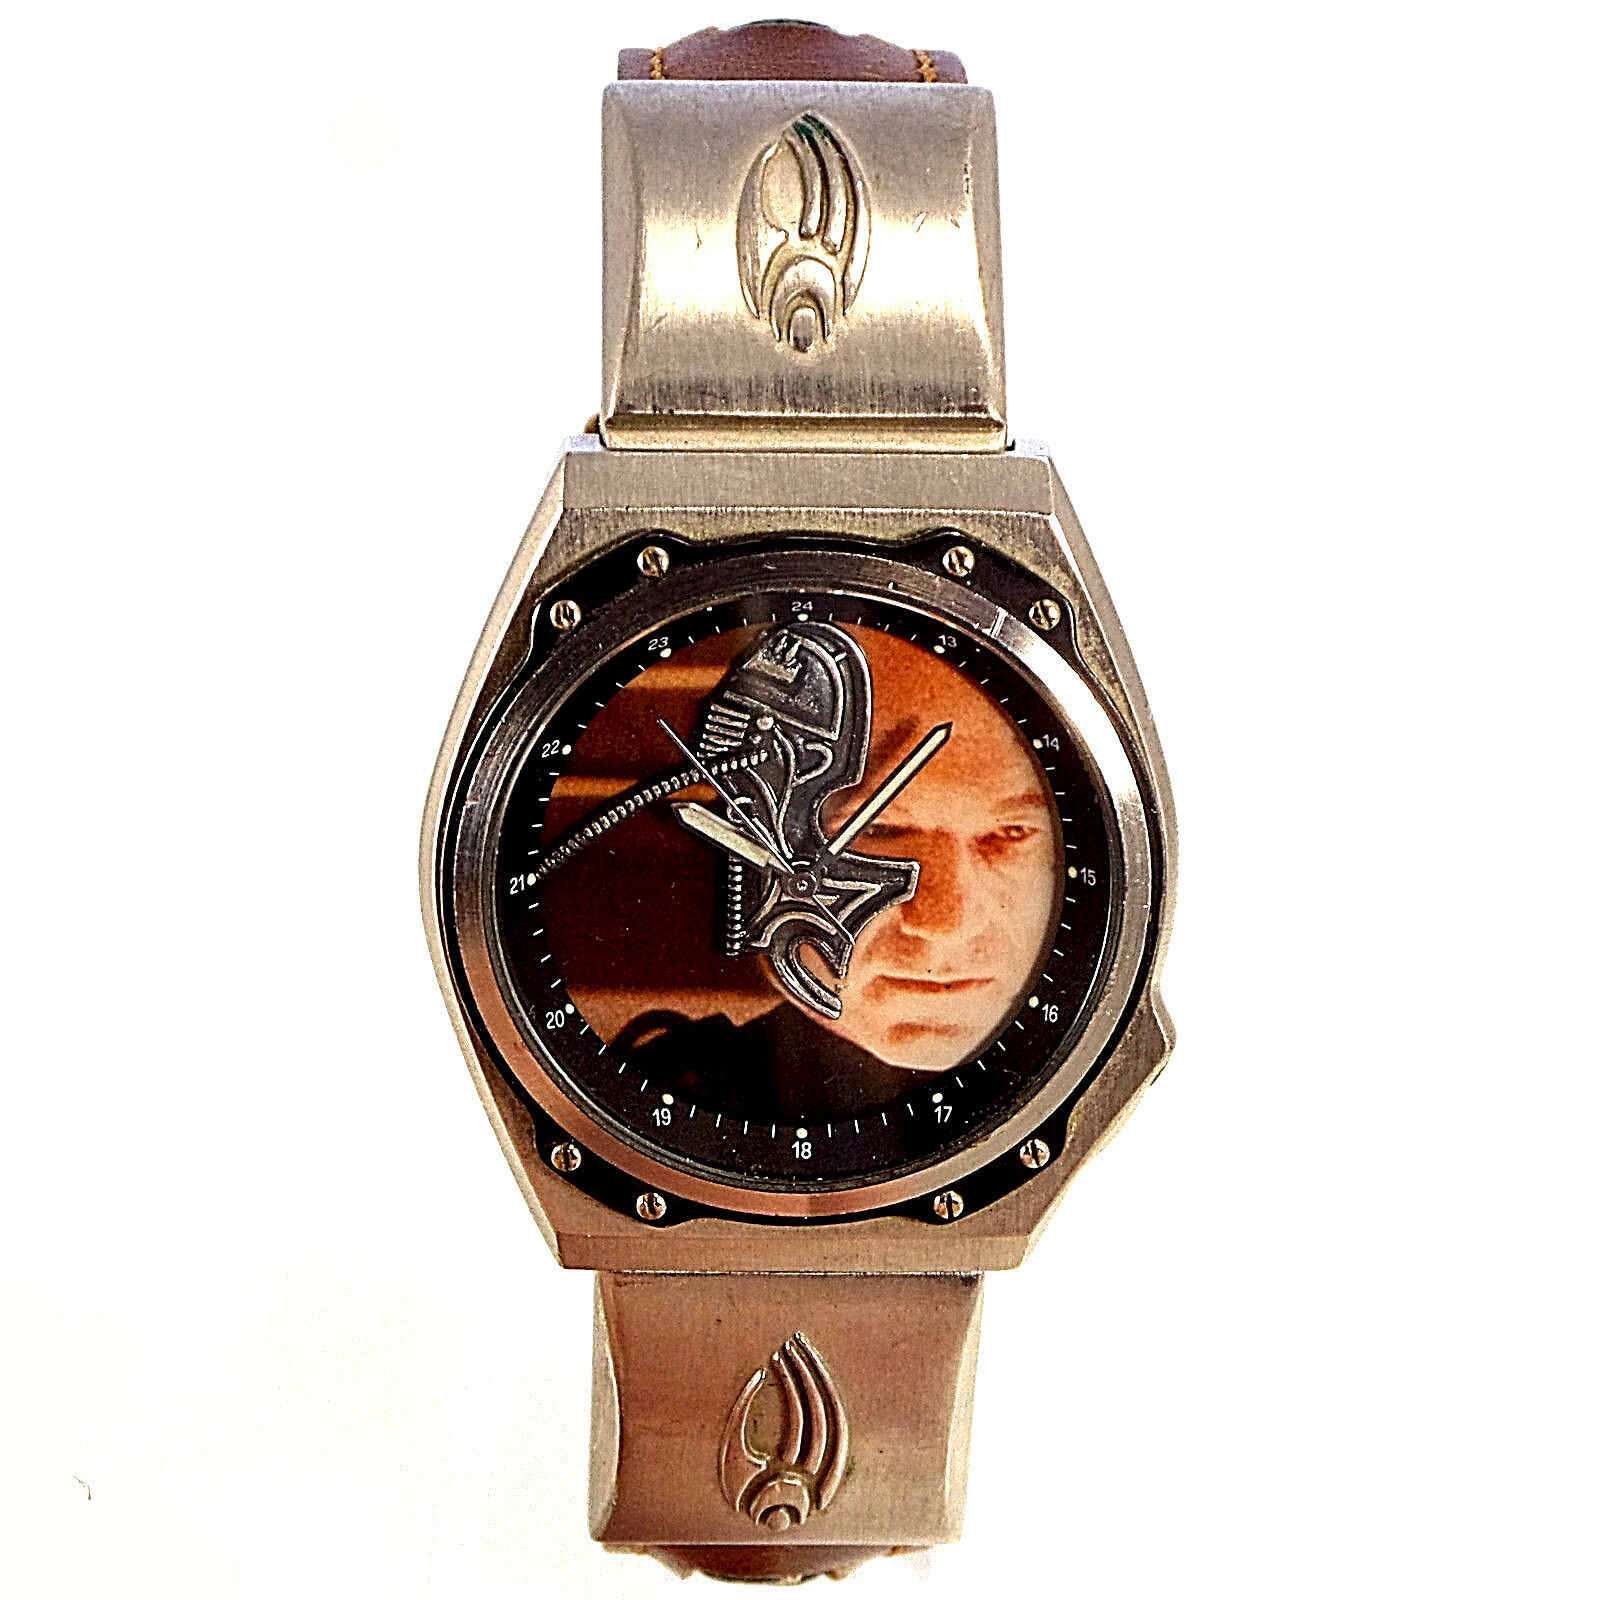 Primary image for Star Trek Captain Picard Borg, Fossil Limited Edition Watch, #XXXX/10K Just $119